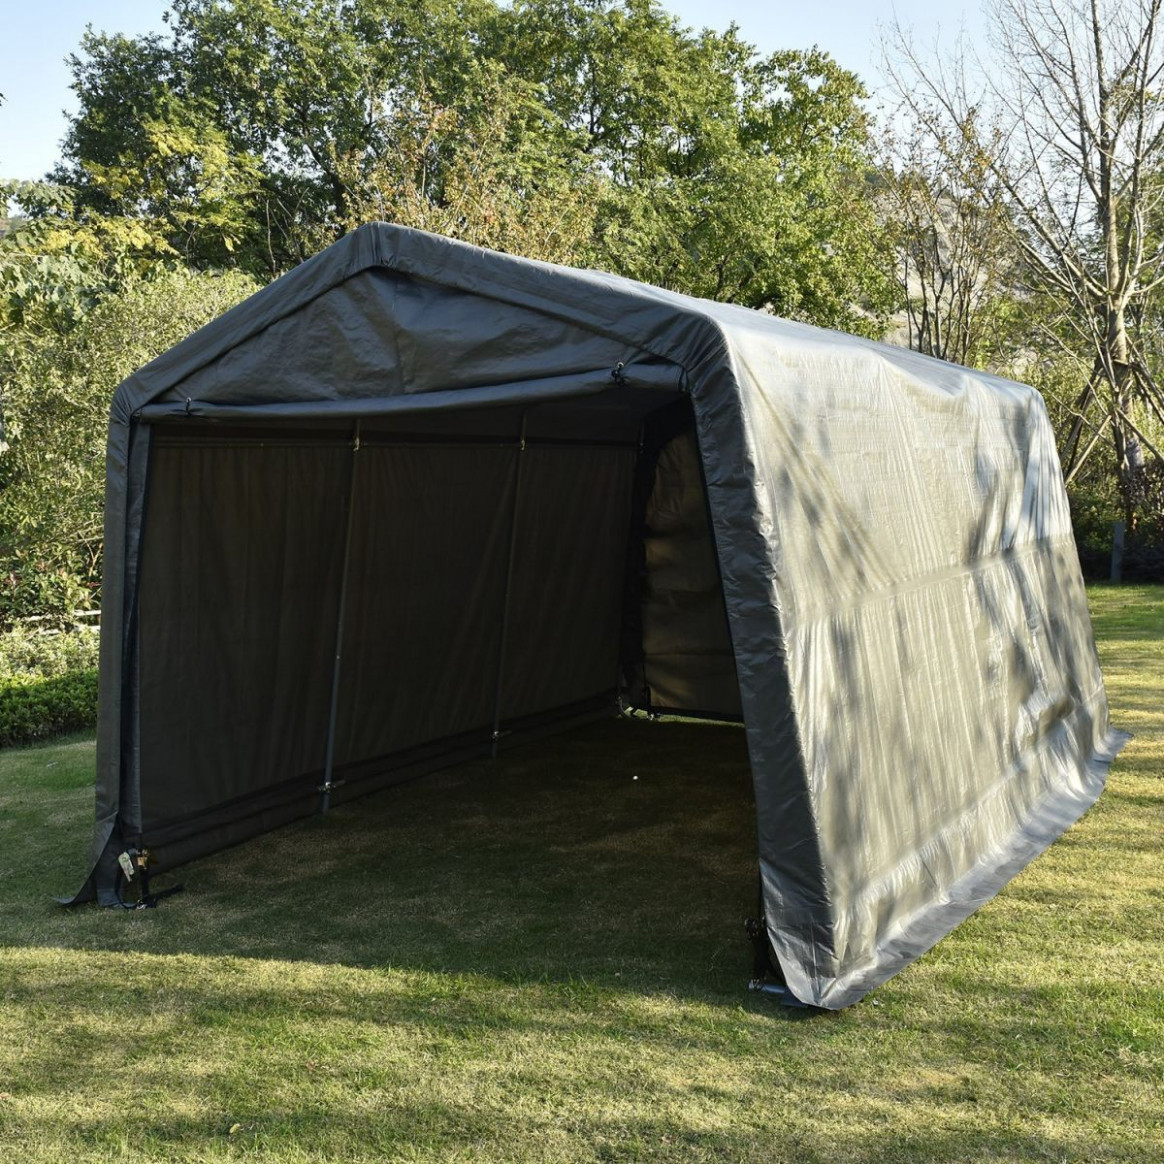 10 Portable Carport Shelters To Take Care Of Your Car Carport Canopy Reviews